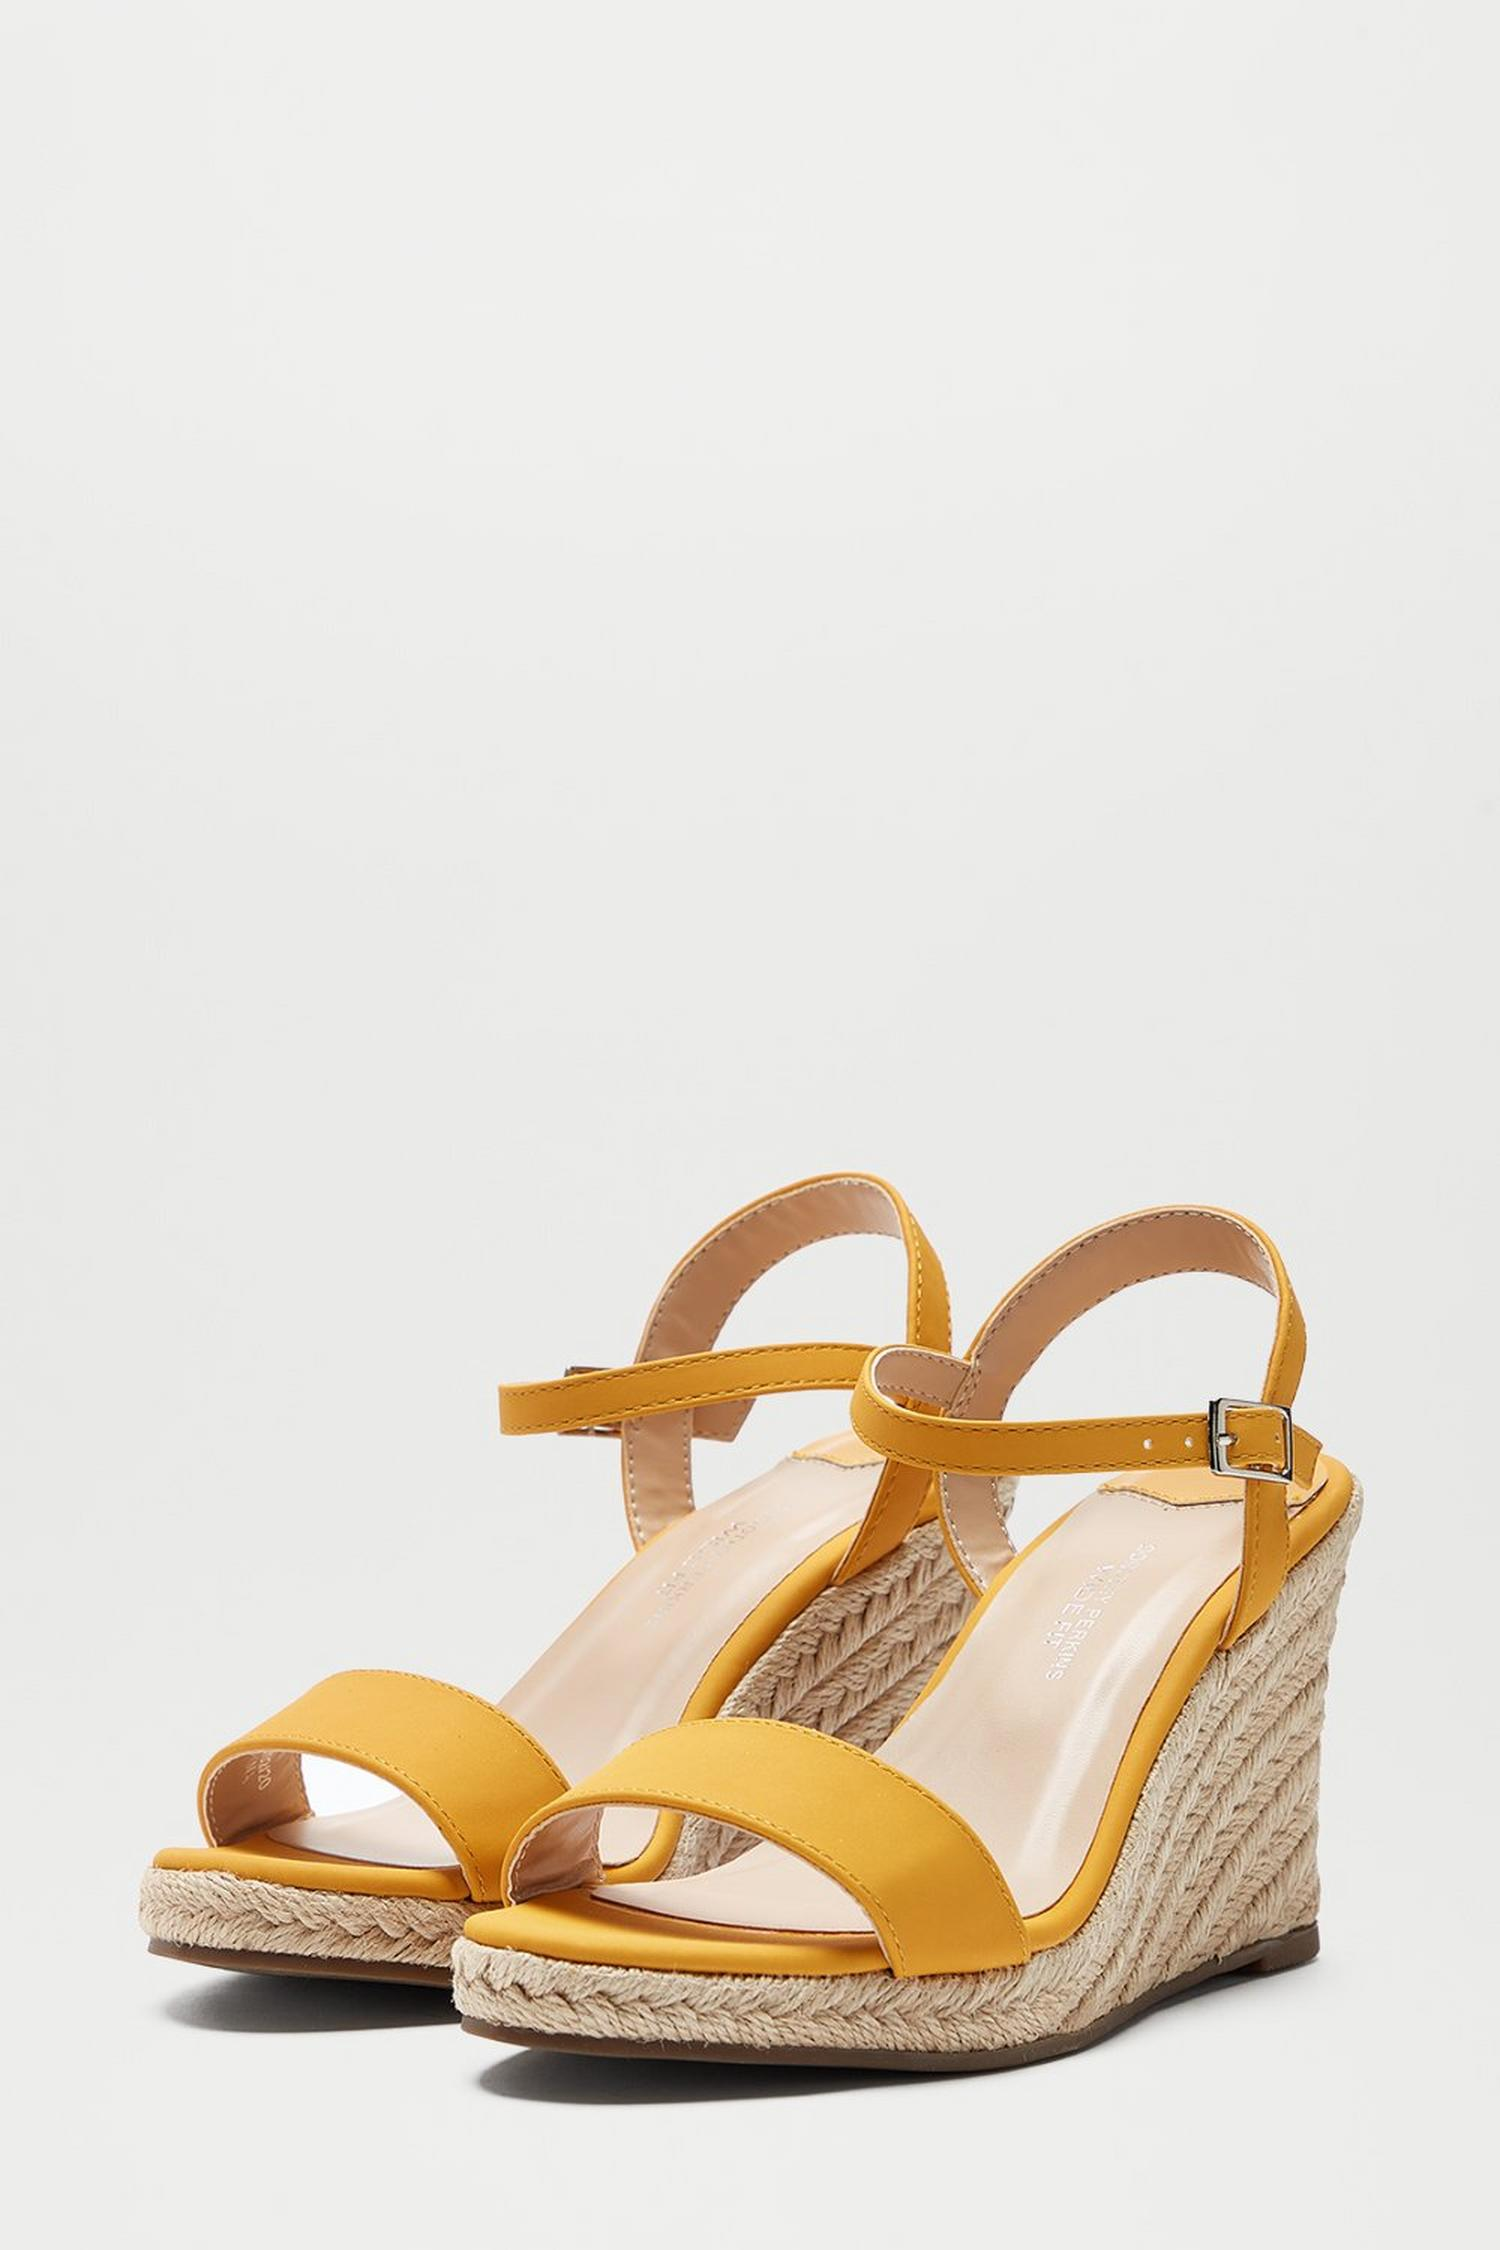 174 Wide Fit Yellow Ray Ray Wedge Sandals image number 2